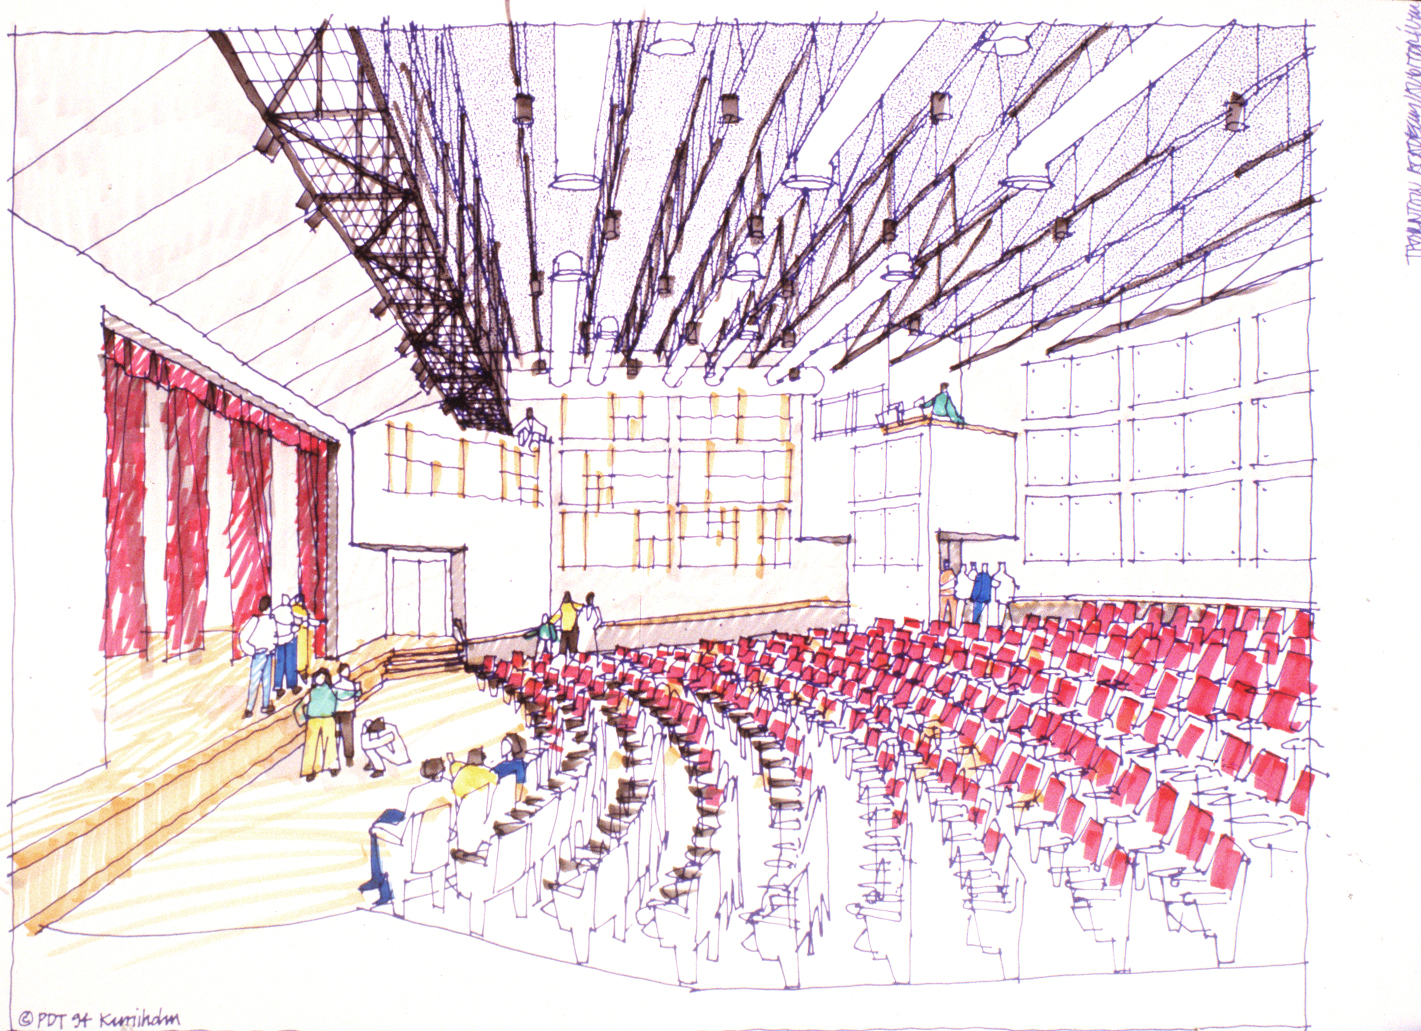 Interior planning sketch, Garland Auditorium, Thornton Academy, Saco, Maine